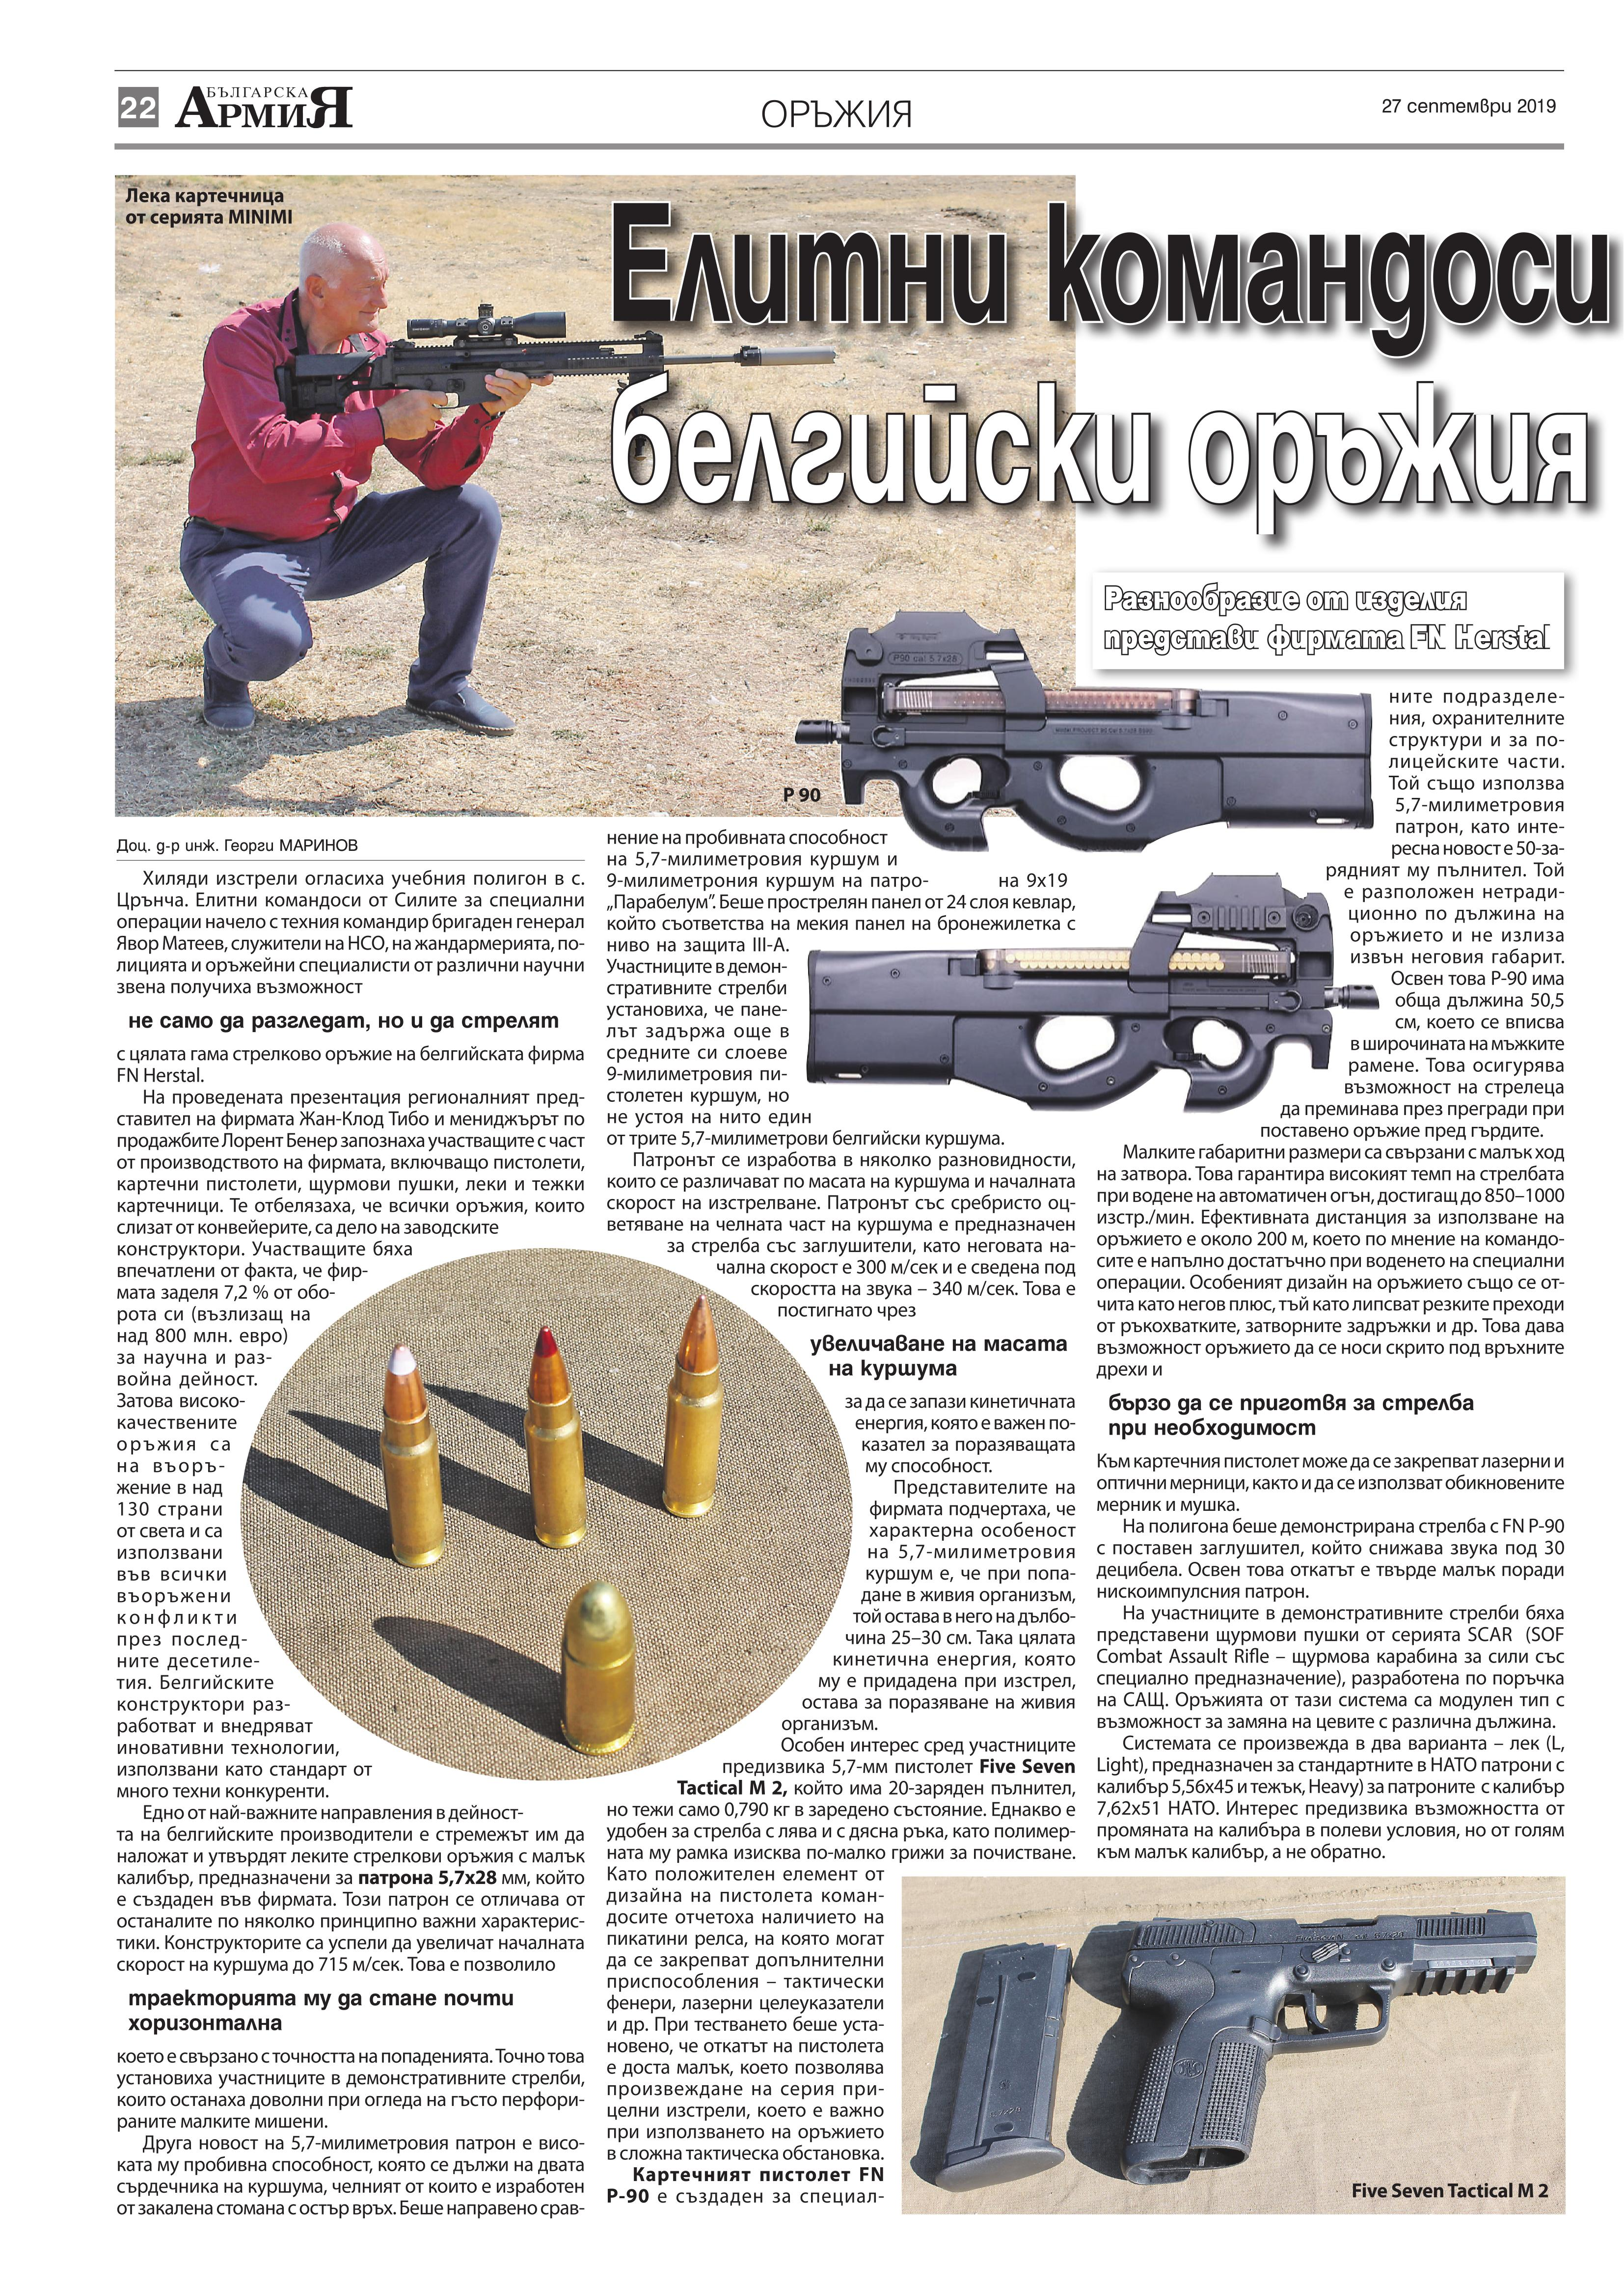 https://www.armymedia.bg/wp-content/uploads/2015/06/22.page1_-110.jpg